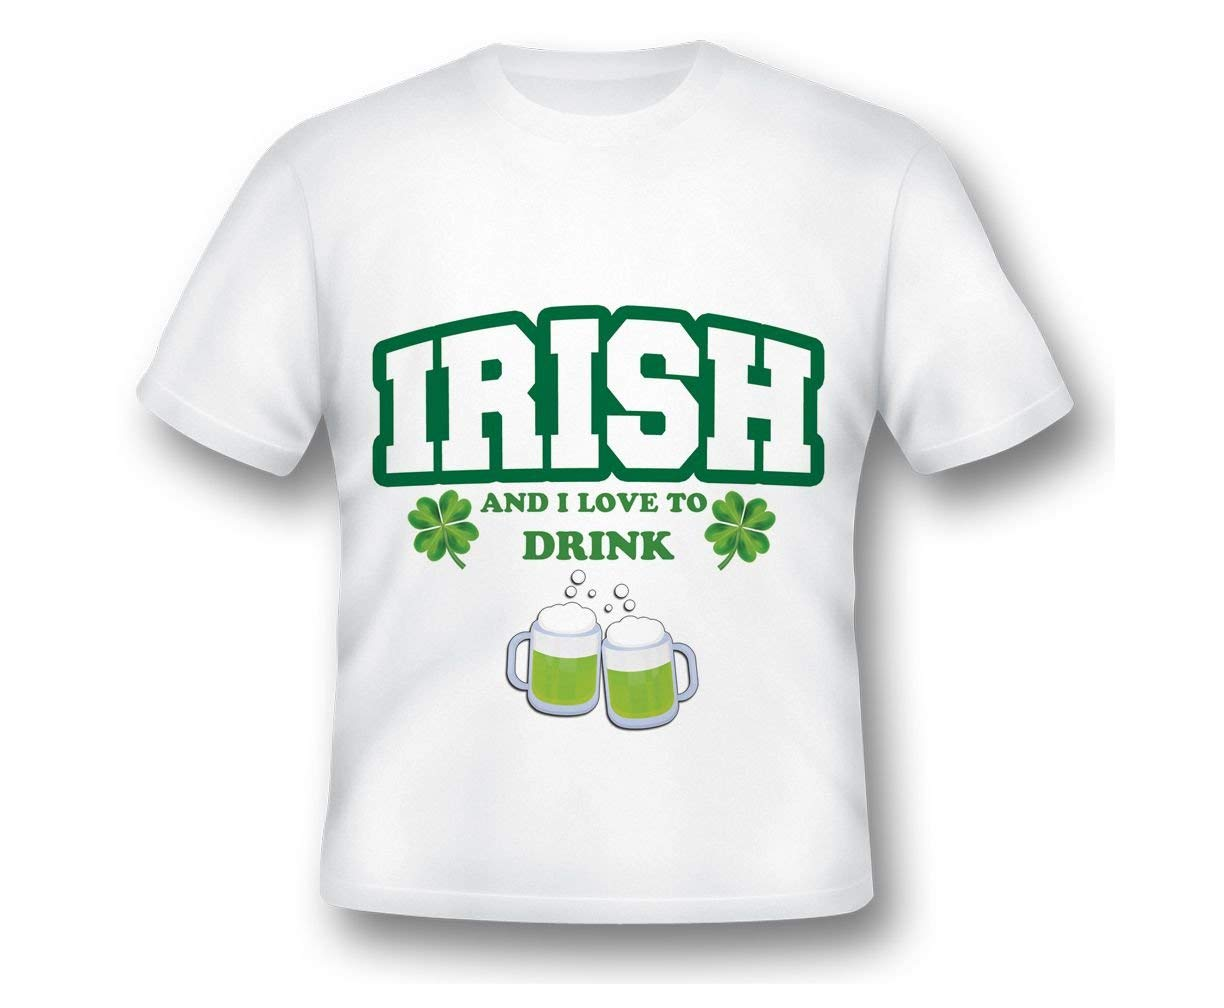 Personalized Irish Drinking Shirt, Shamrock Shirt, Four Leaf Clover, I love to Drink, St Patty Day, Green Clover, Irish Shirt, Day Drink Shirt, Lucky Shirt, ST. PATRICK'S DAY LUCKY SHIRT